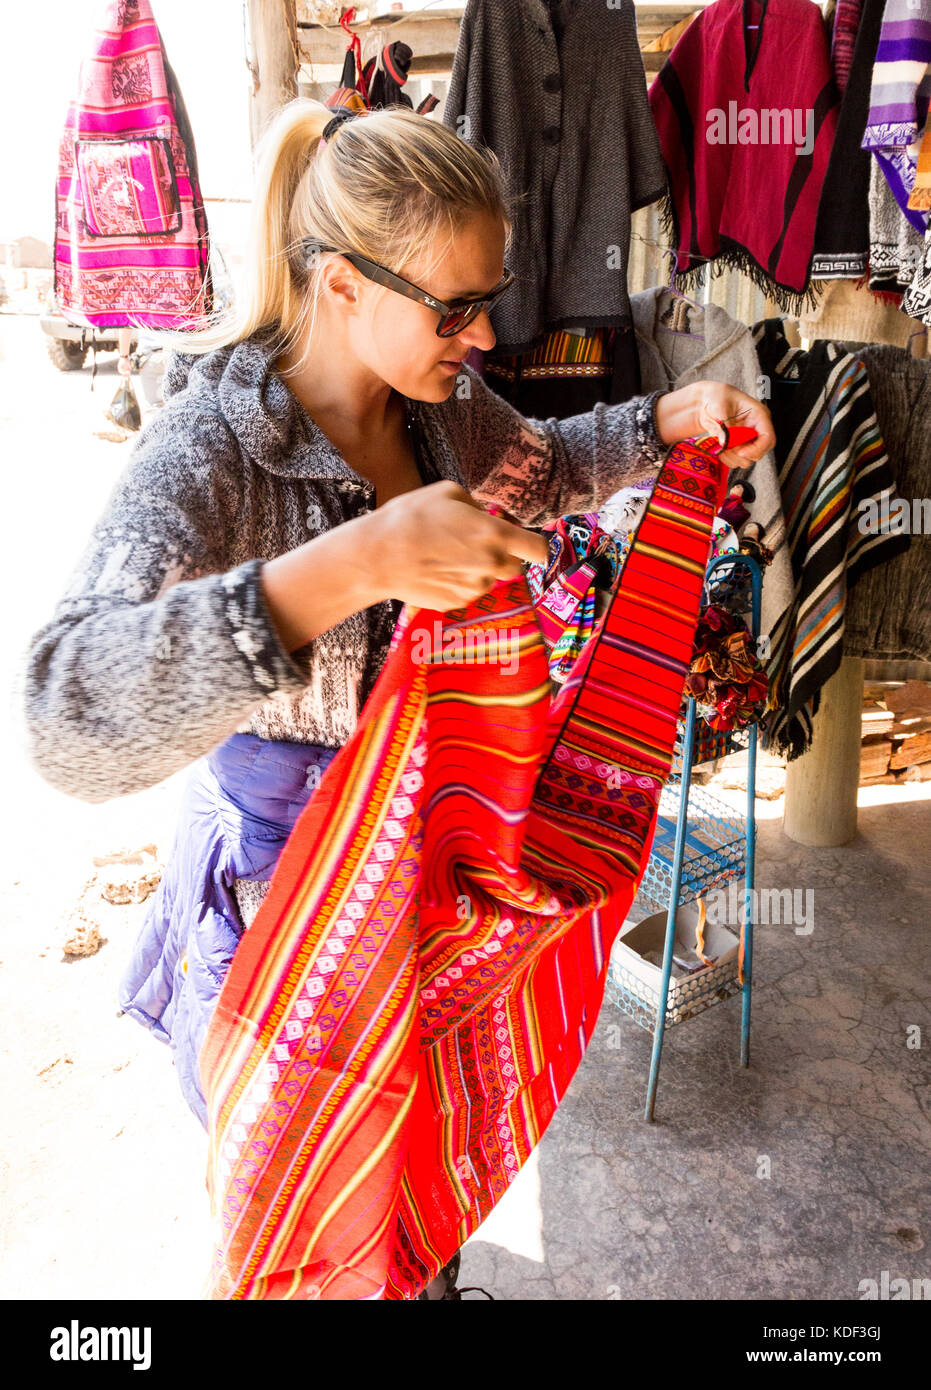 Shopping in Witches' Market, La Paz, Bolivia - Stock Image